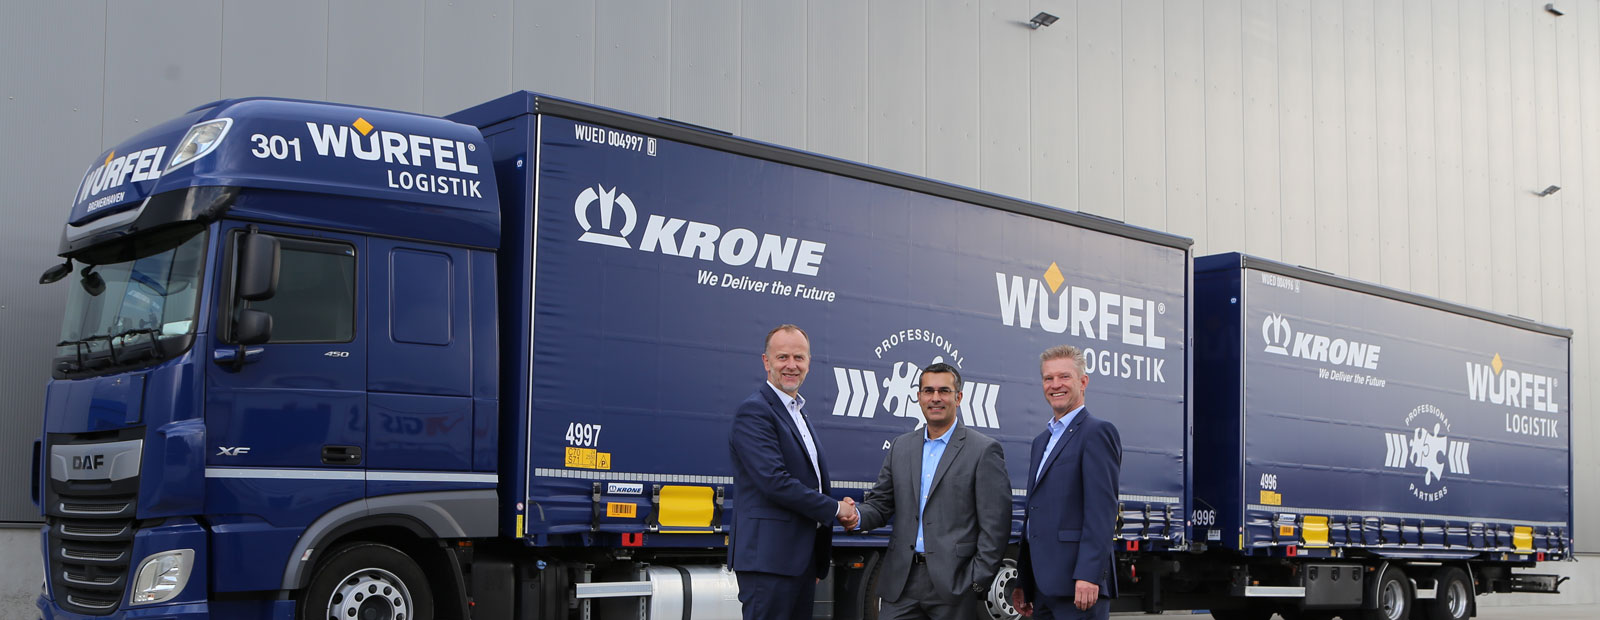 Würfel Logistik relies on Krone